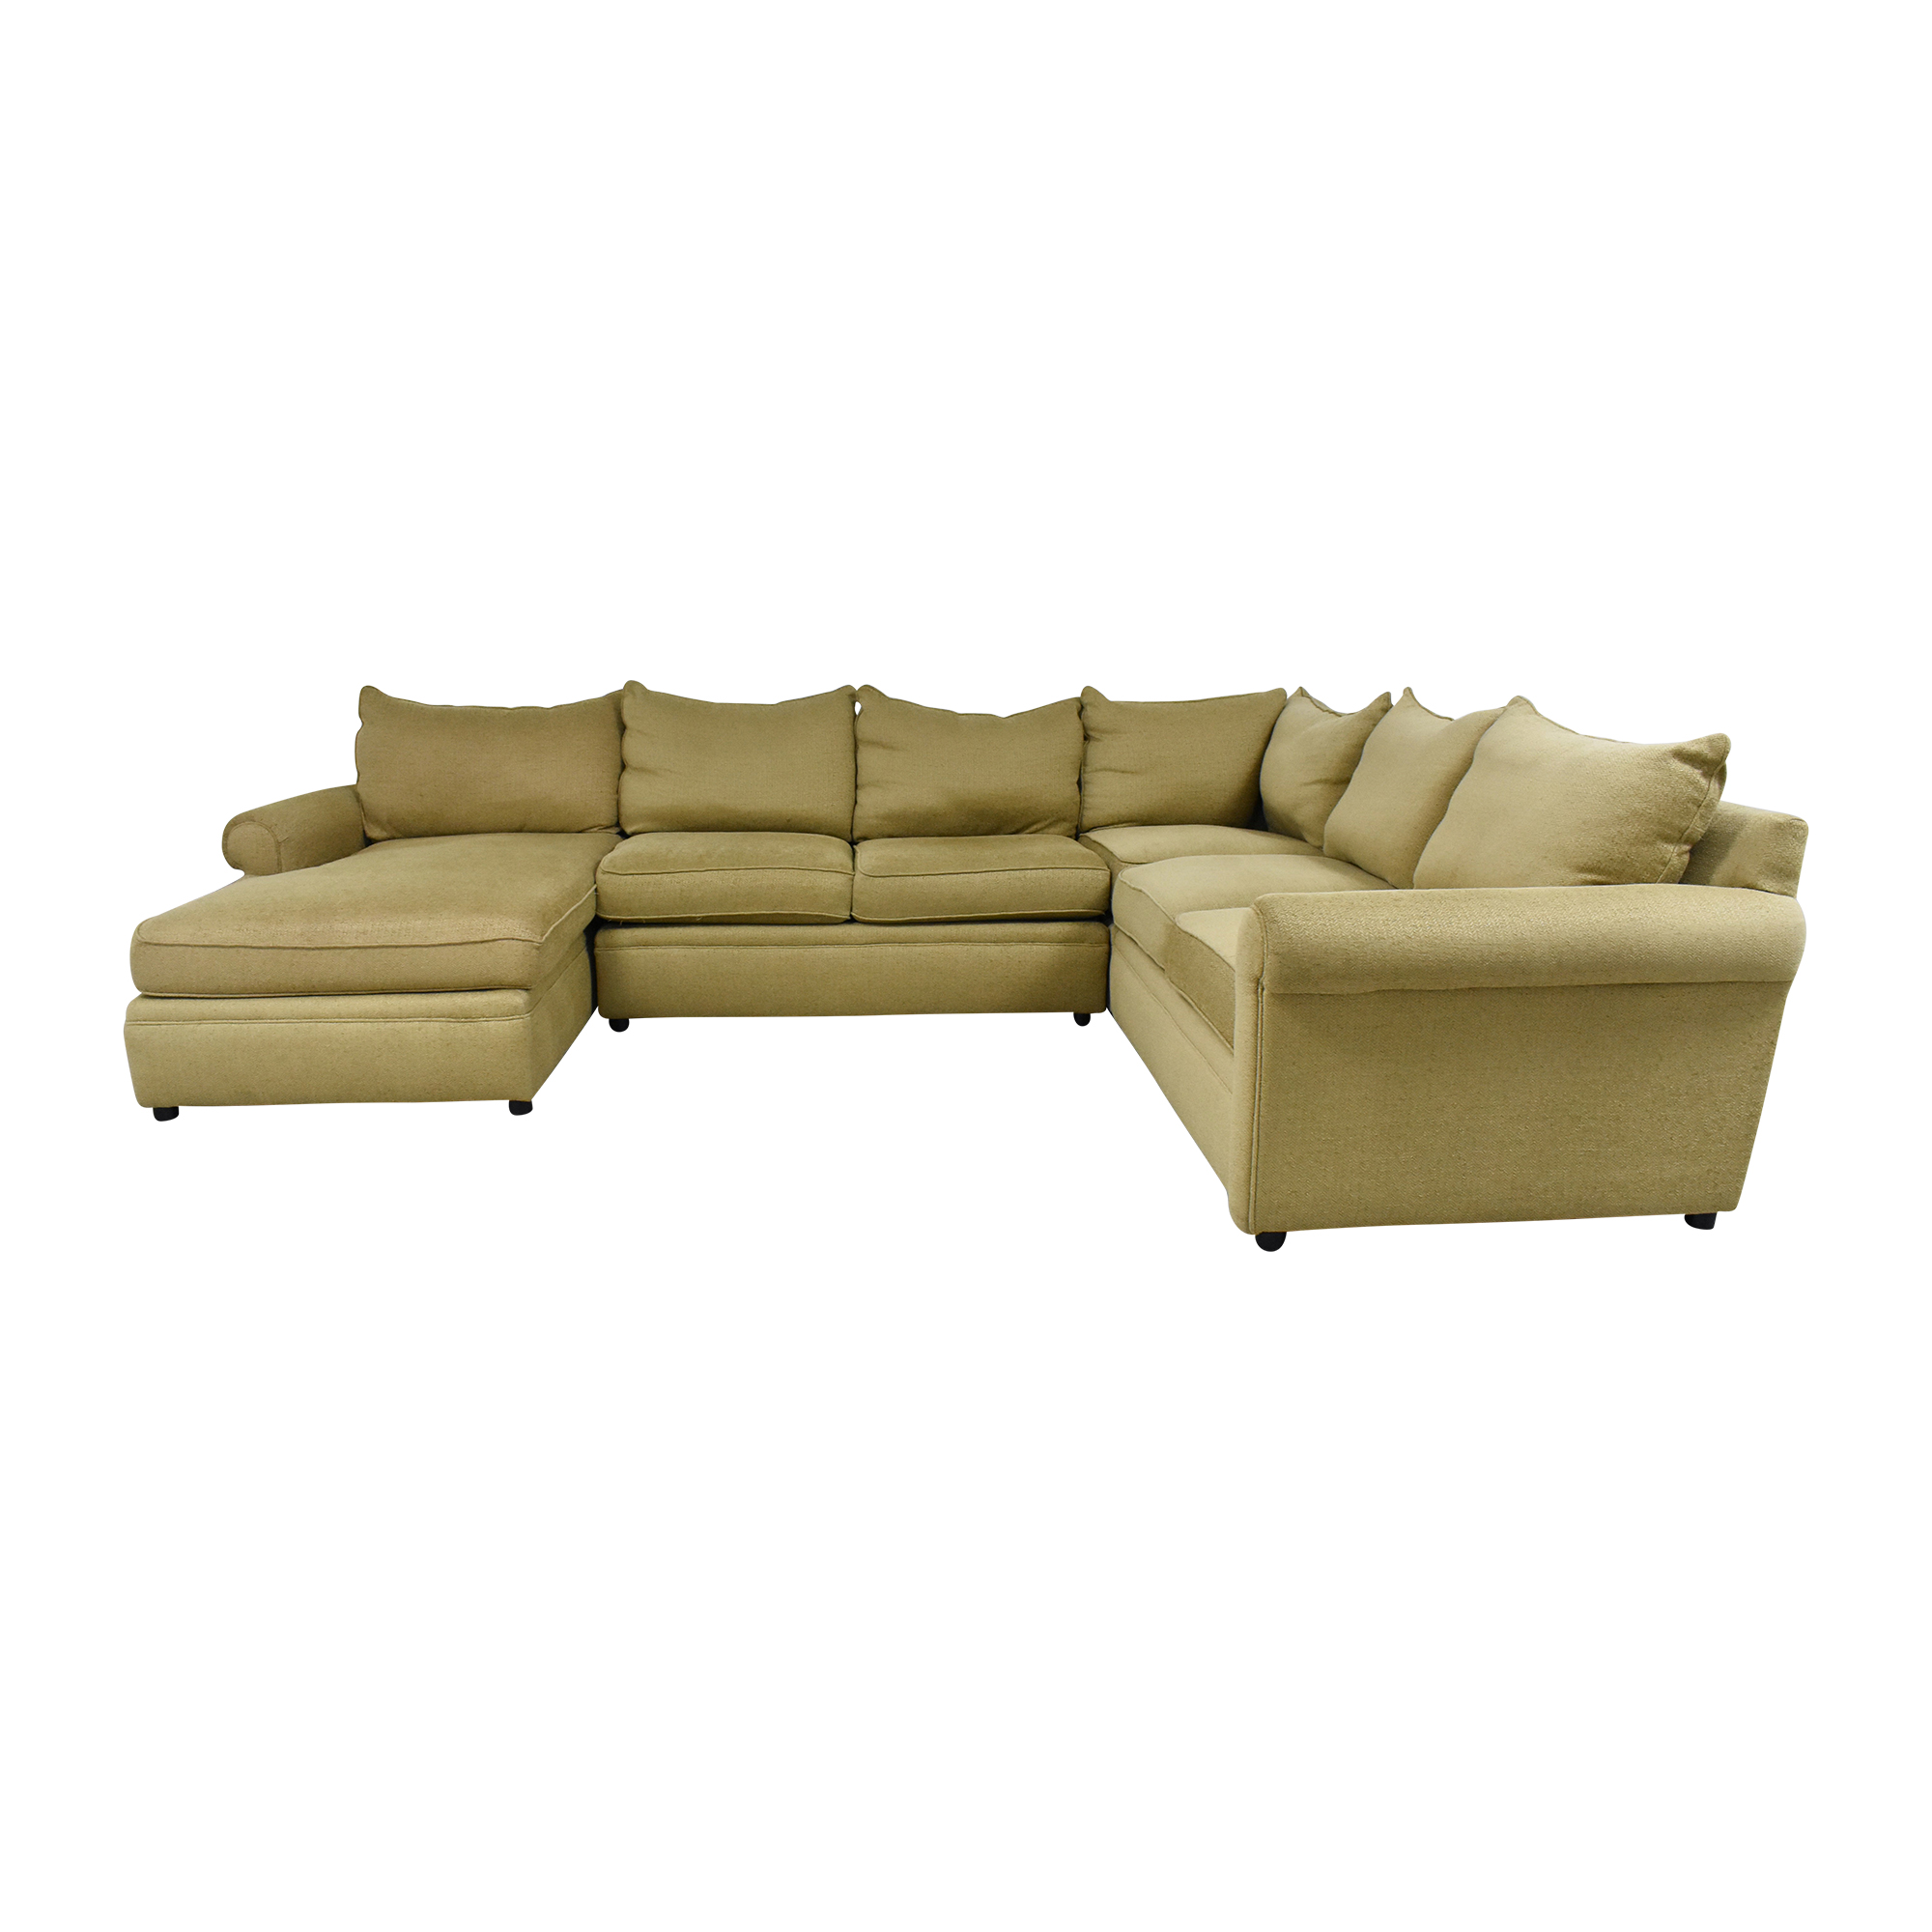 Domain Home Domain Home Sectional Sofa with Chaise second hand